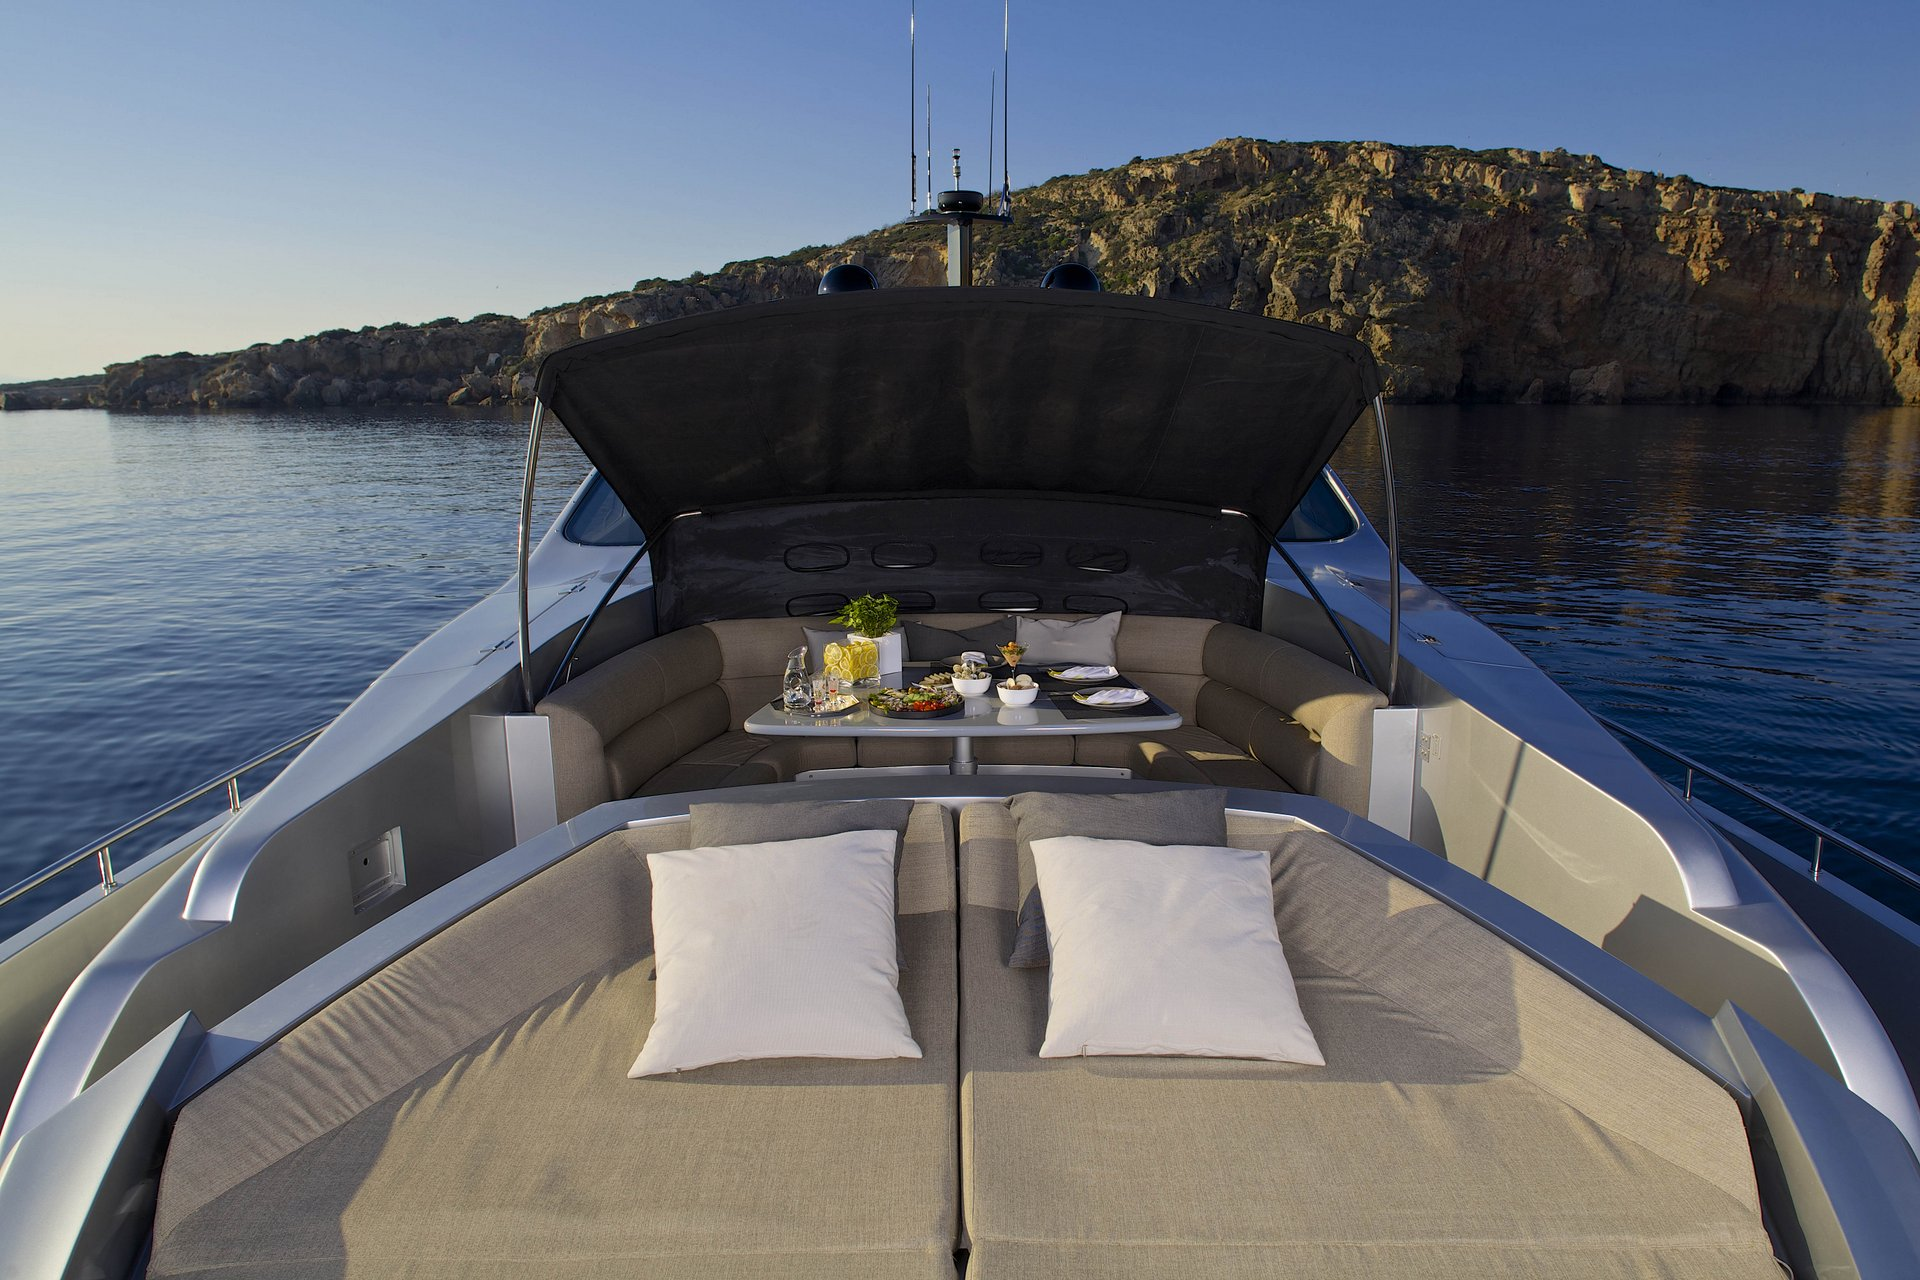 M/Y SOLARIS yacht for charter deck lounging